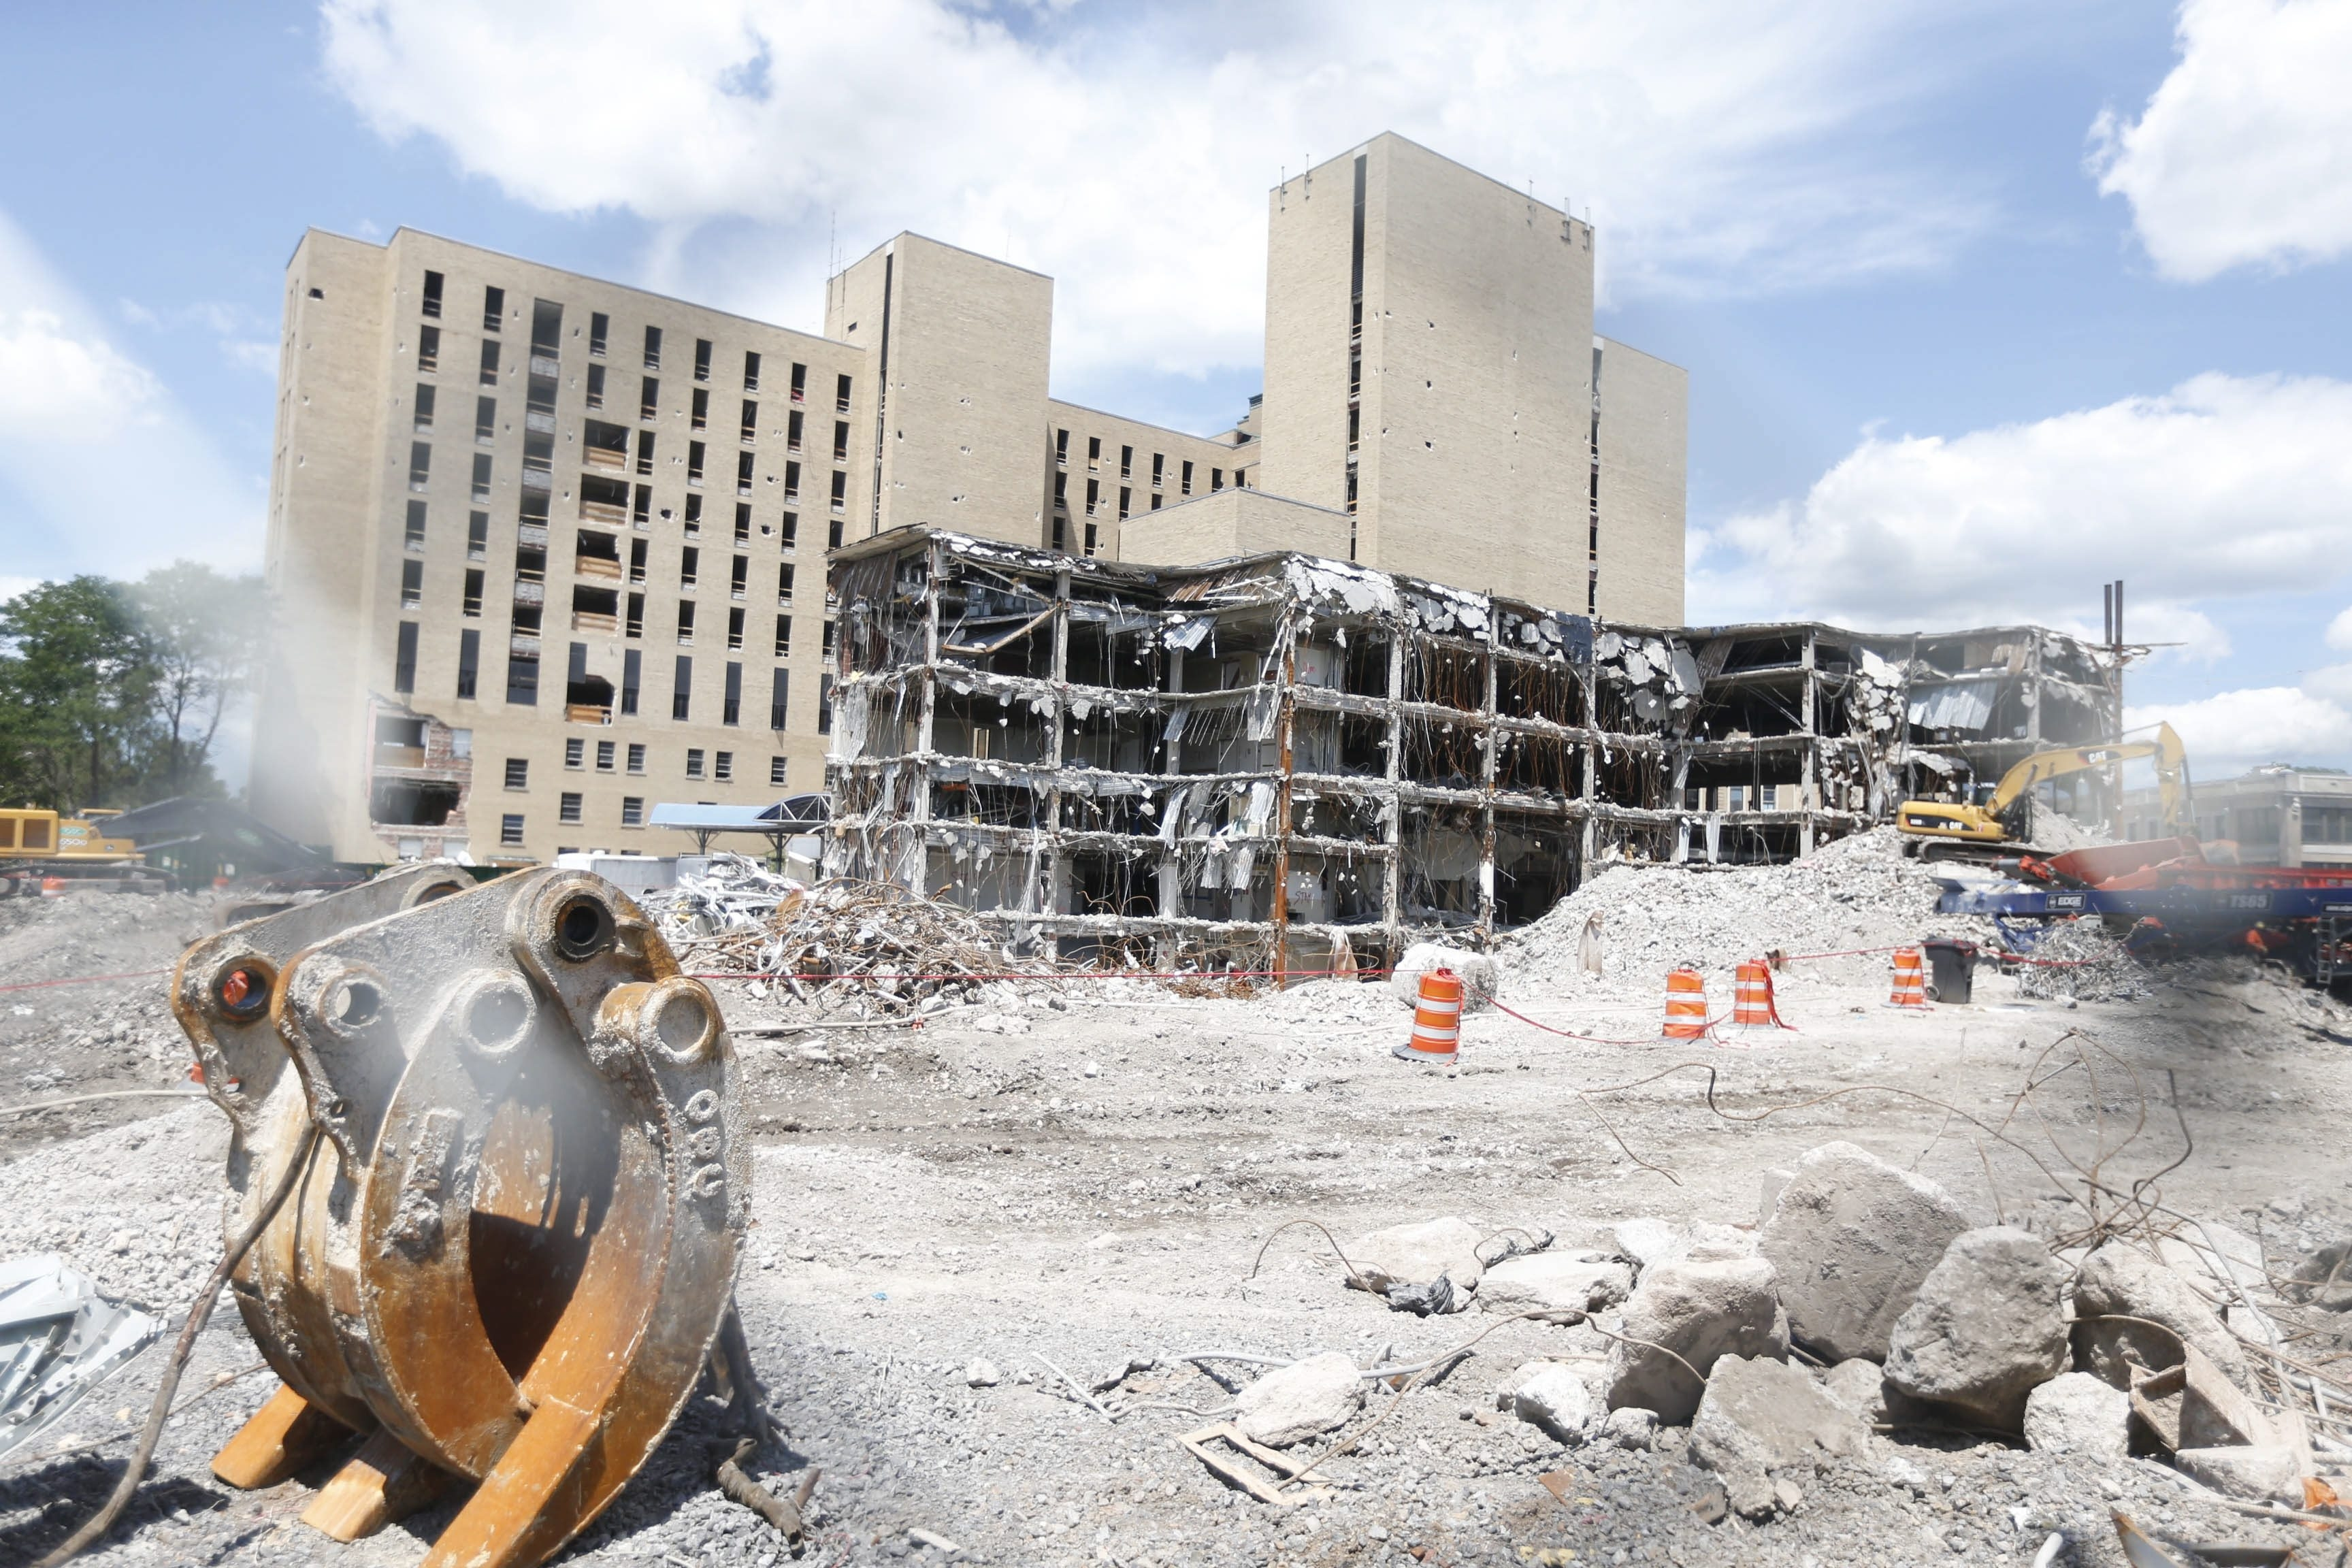 The implosion of the former Millard Fillmore Gates Circle Hospital was approved Wednesday by the Planning Board. The site will soon be home to apartments, townhouses, condos, a senior living community, a gym, a grocery store and office spaces.